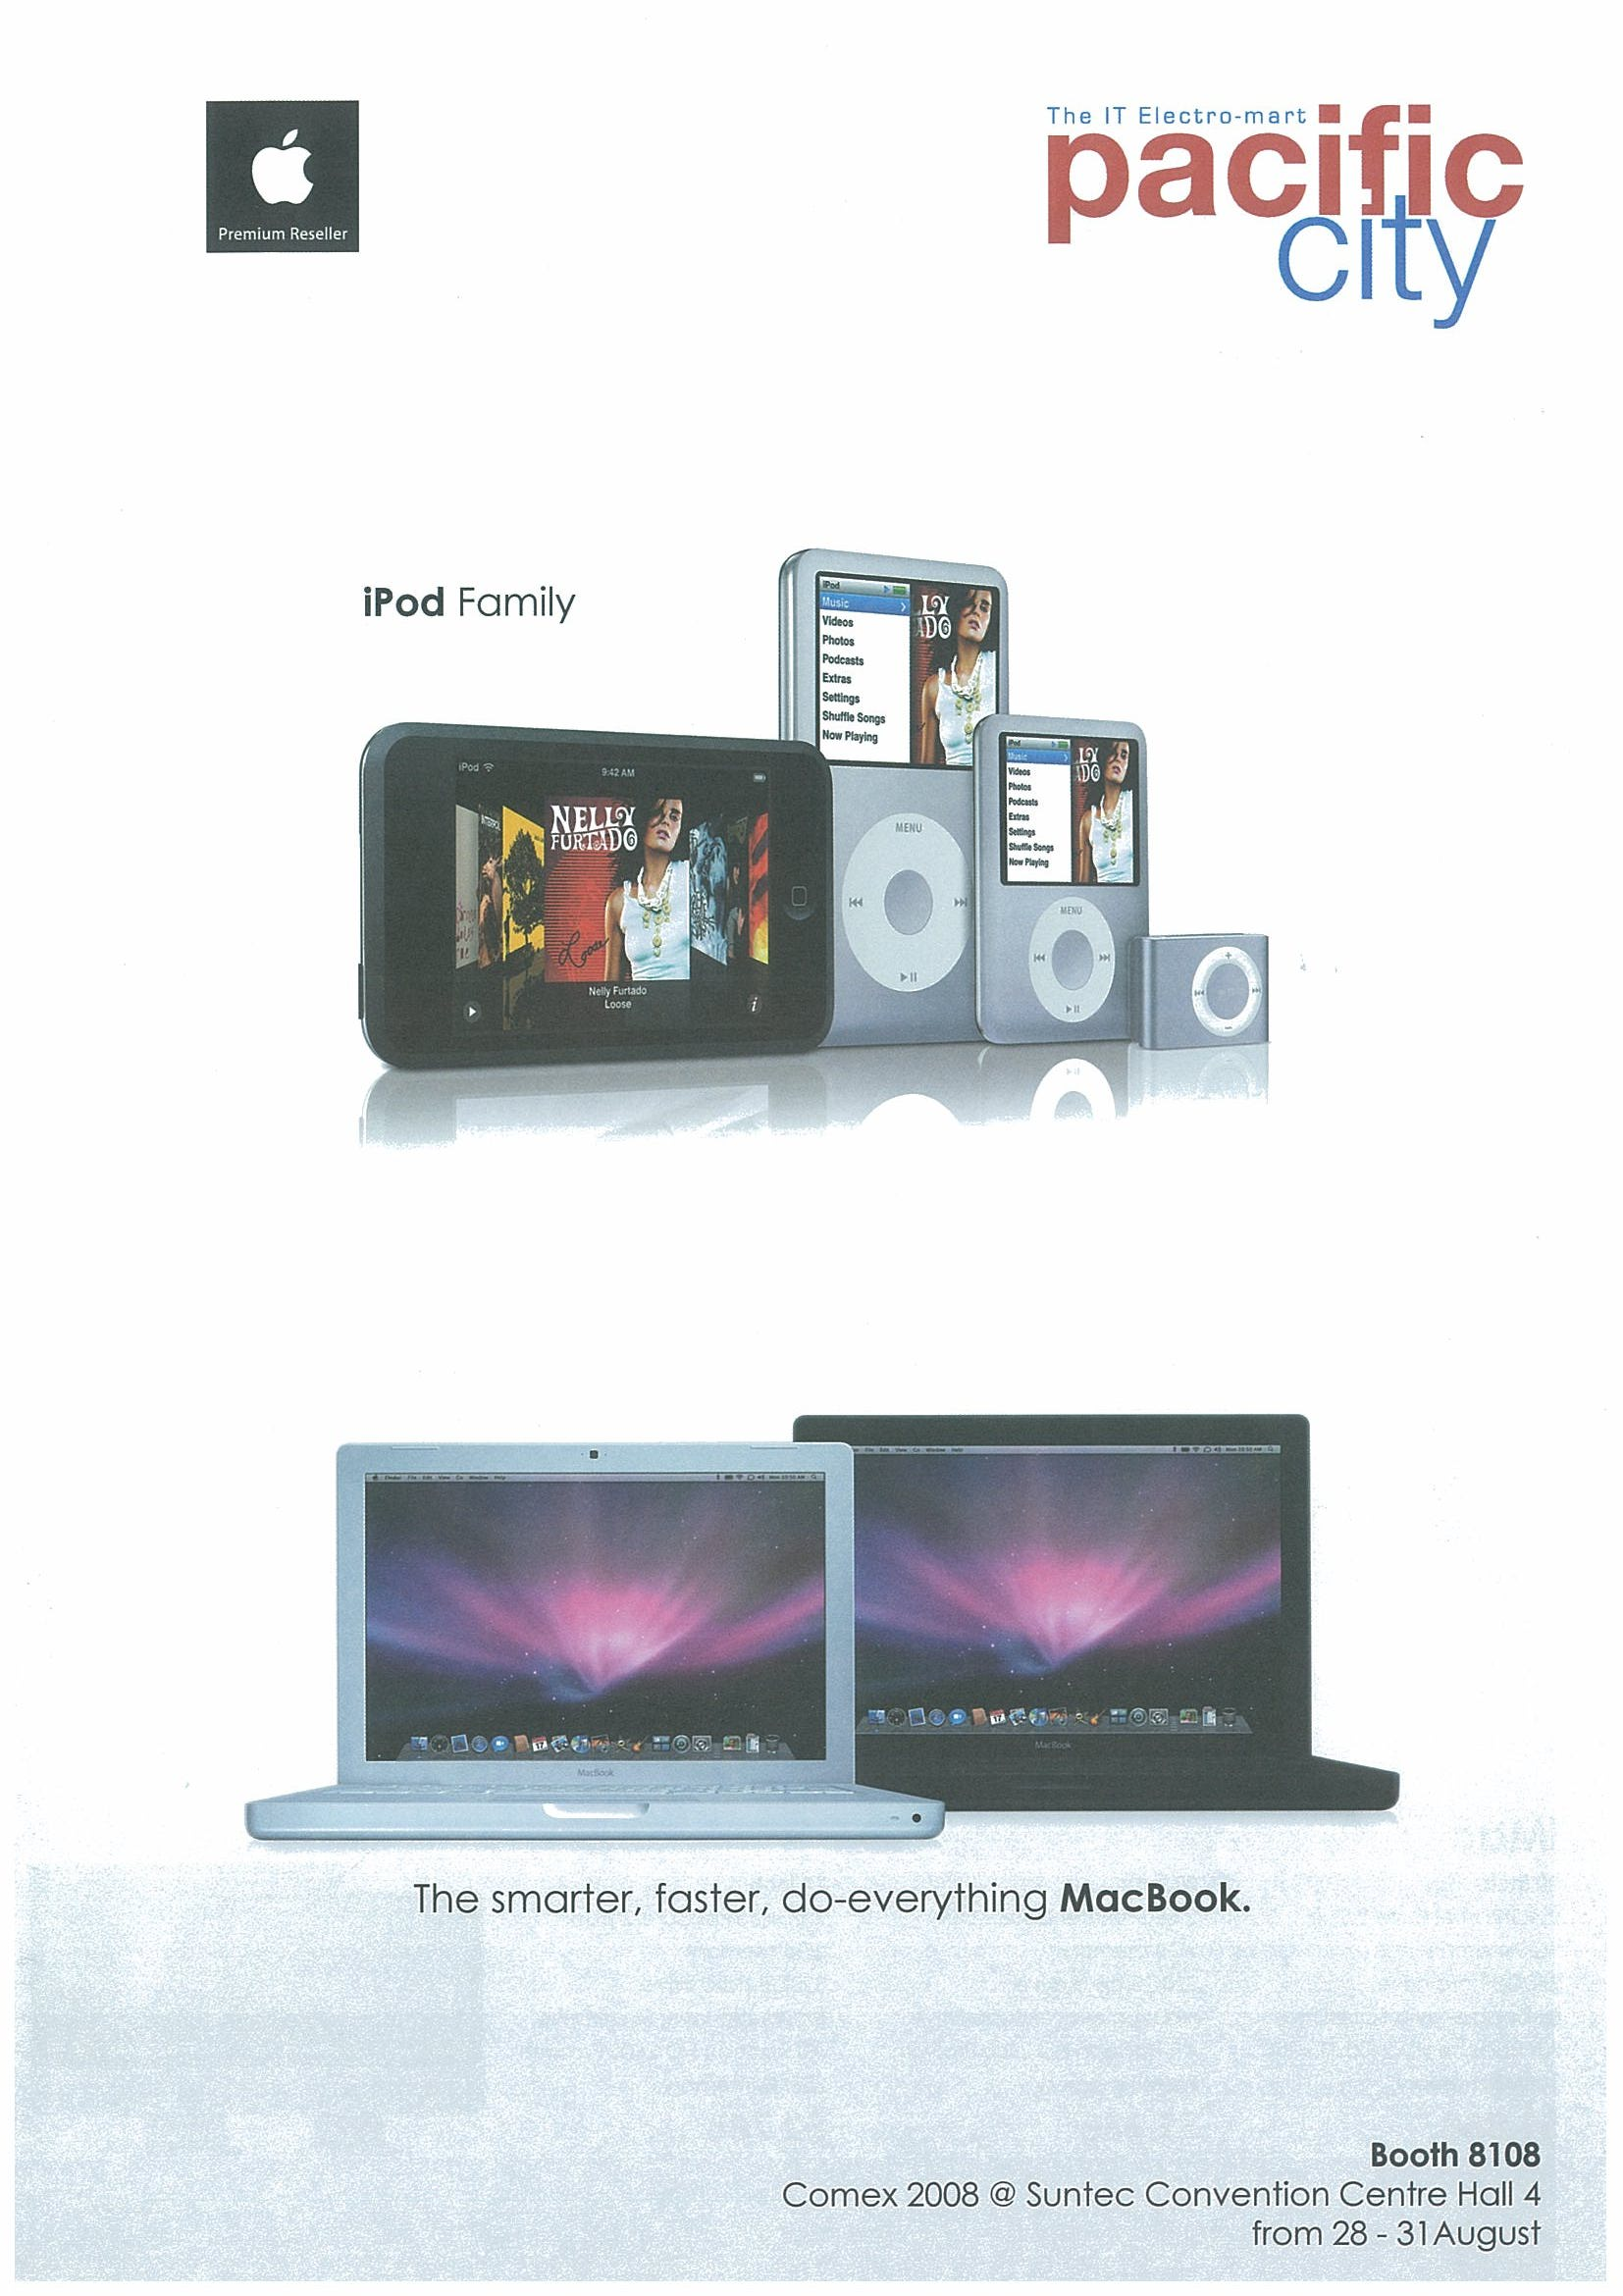 Comex 2008 price list image brochure of Apple Pacific City Page 1